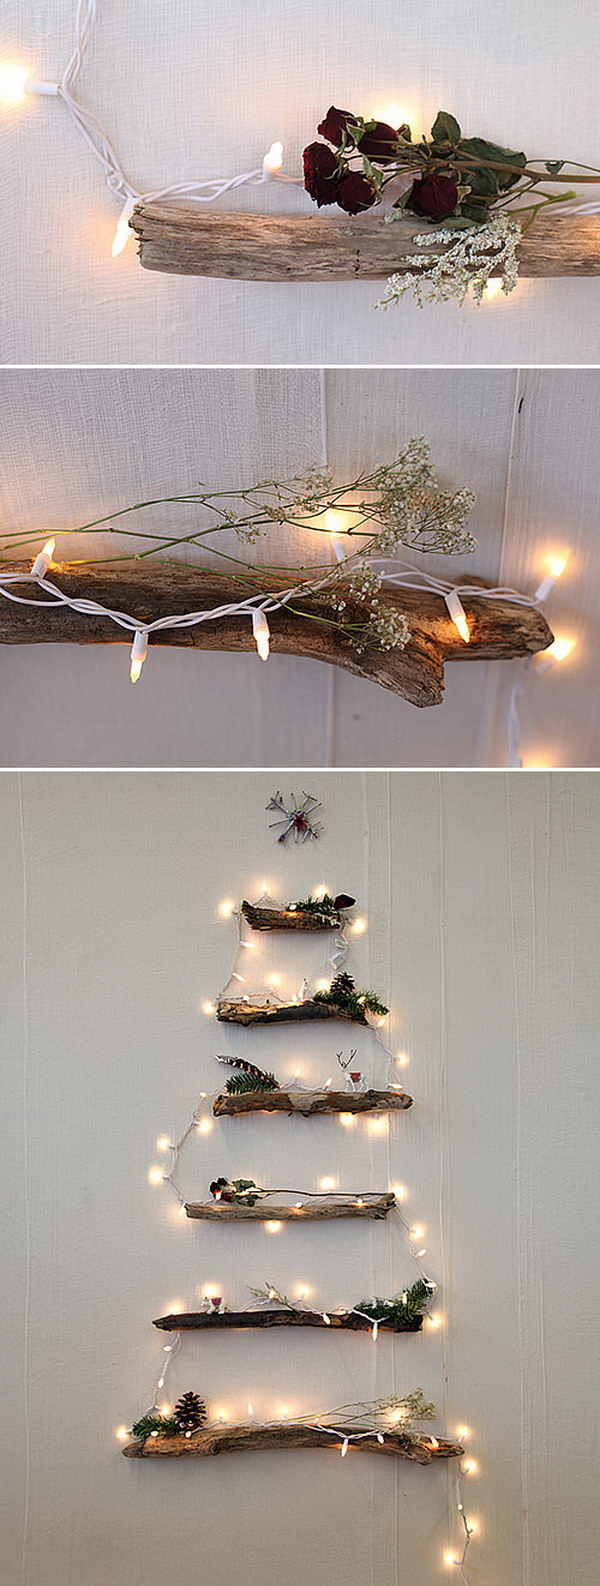 DIY Lighted Twig Christmas Tree. This DIY lighted twig Christmas tree adds a rustic touch to your holiday decor!